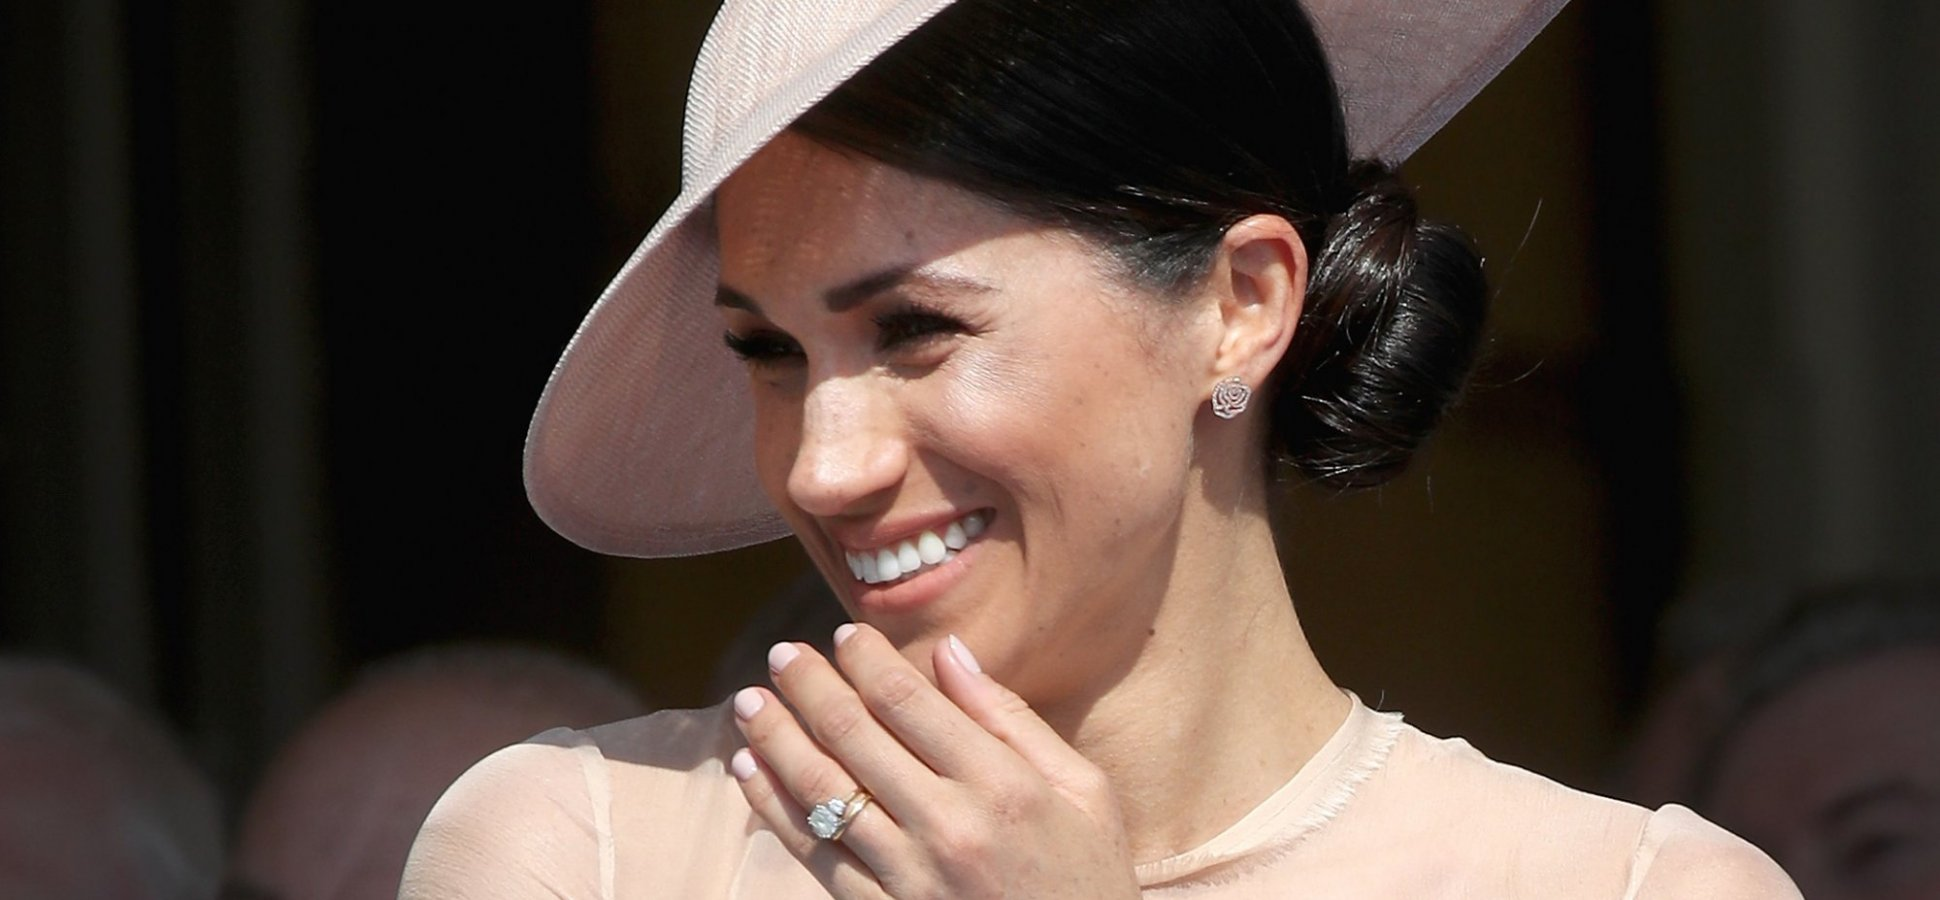 Meghan Markle Is a Master of Influence. Here Are 4 of Her Secrets